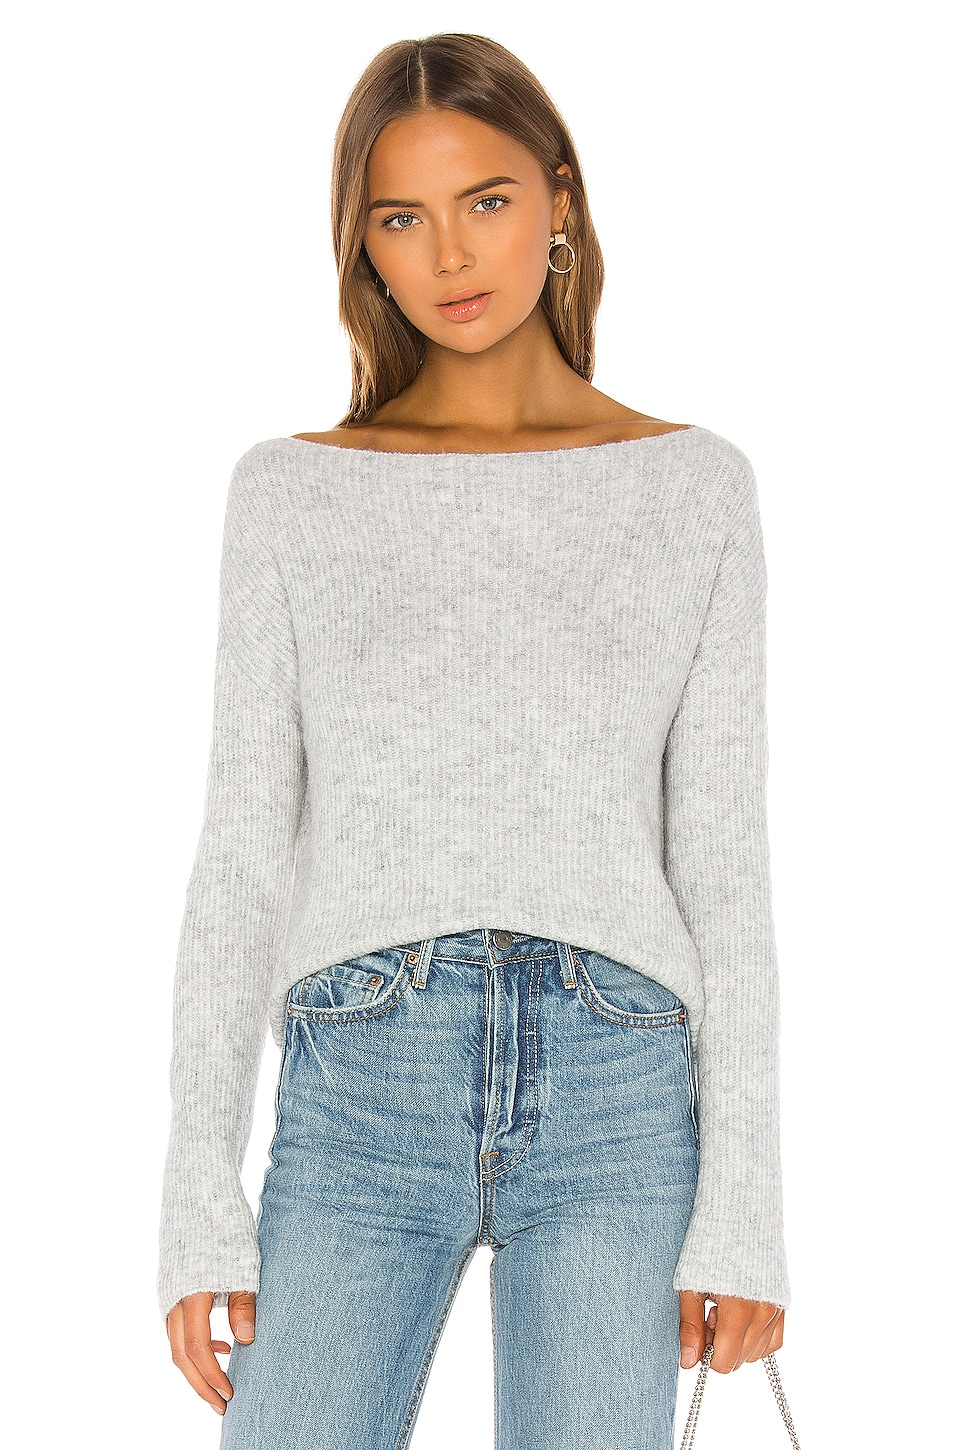 Alayah Off Shoulder Sweater, view 2, click to view large image.